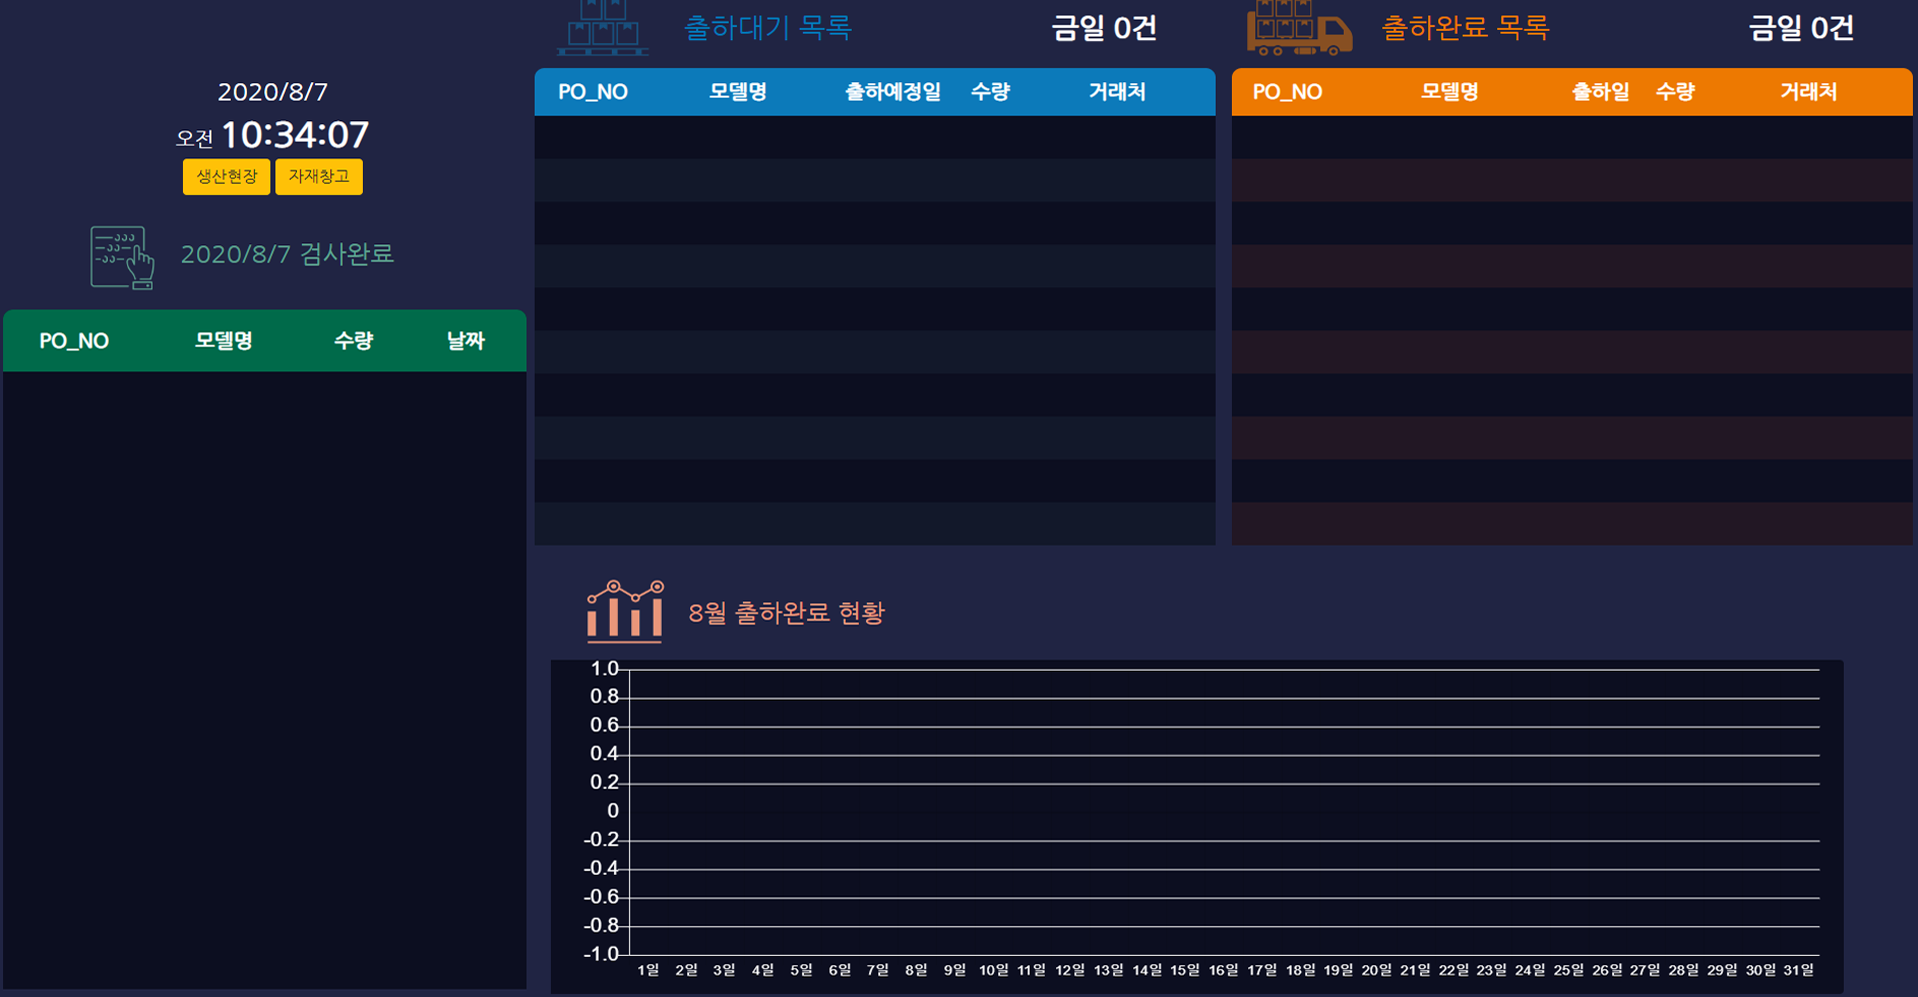 mes_dashboard_ERP 및 CPS 연계